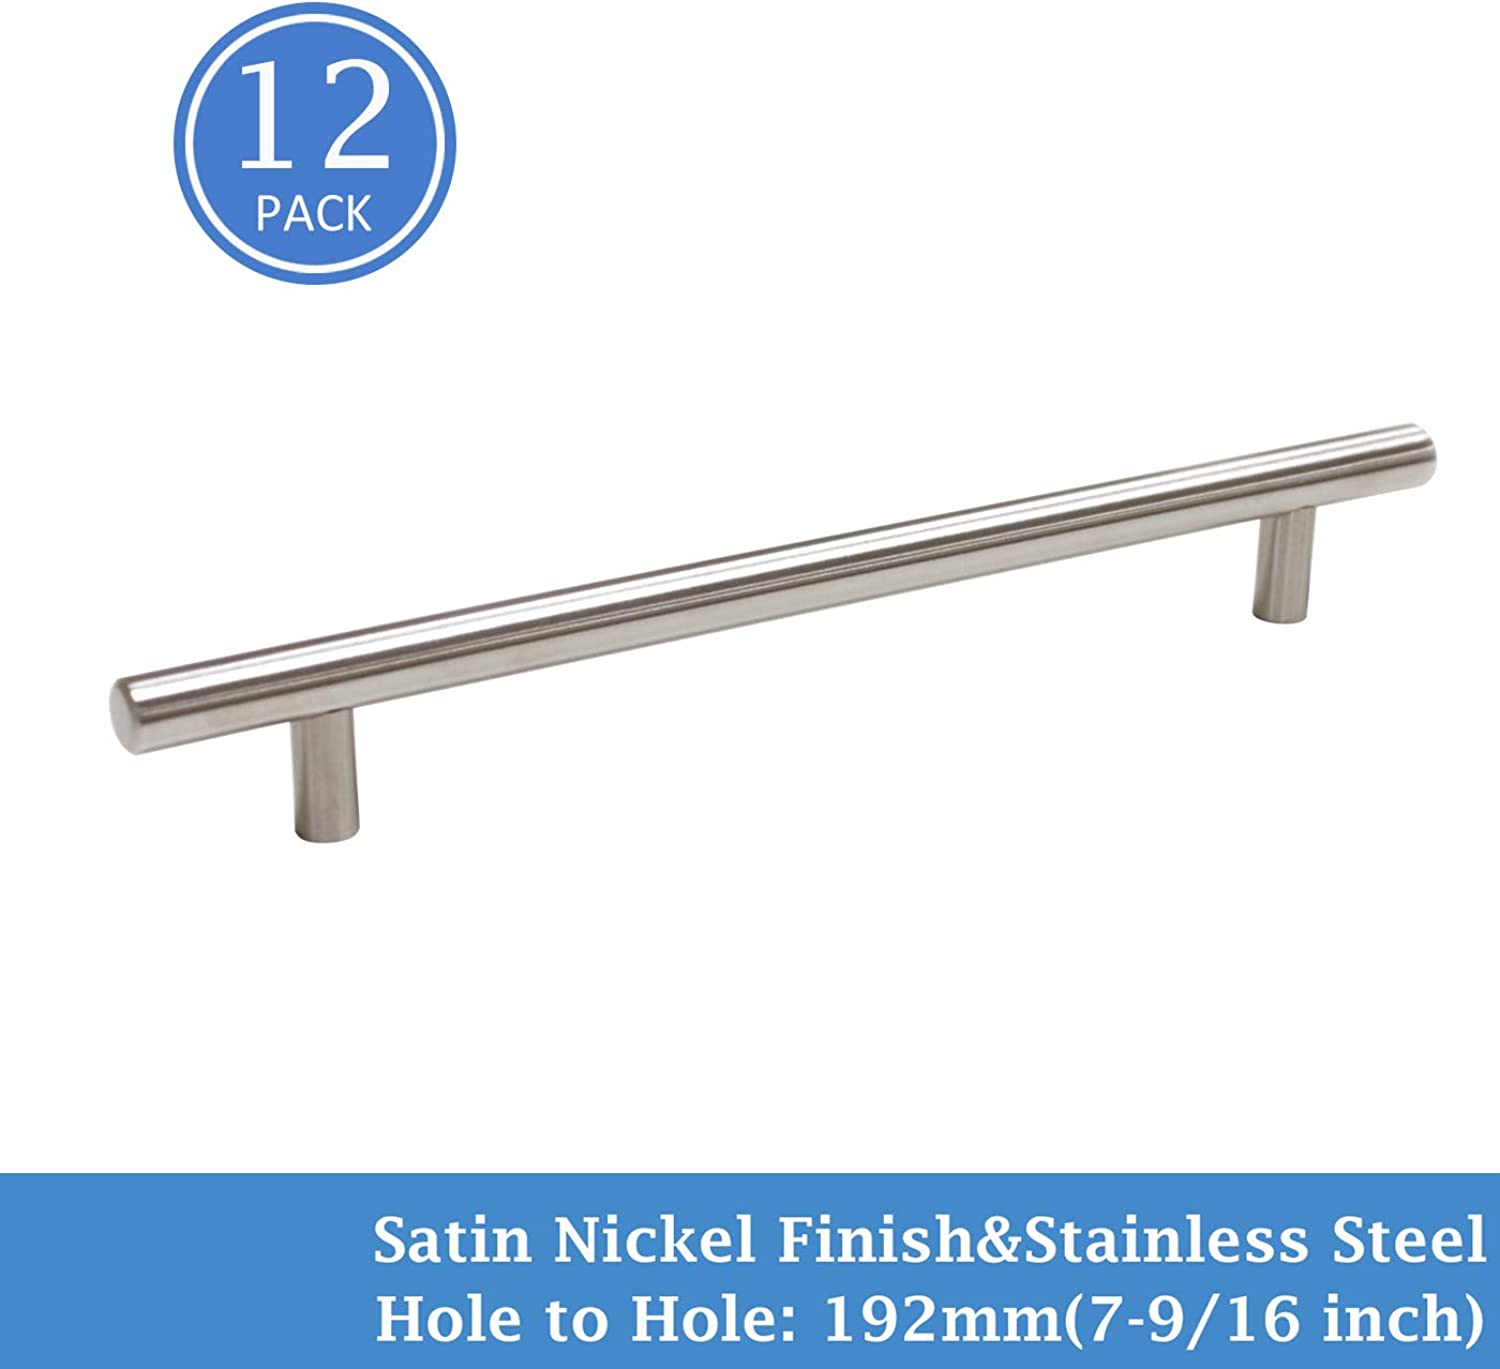 Knobonly 7-9 16  Hole Centers Stainless Steel Modern Cabinet Drawer Handle Pulls Kitchen Cupboard T Bar Knobs and Pull Handles Brushed Nickel -12 Pack